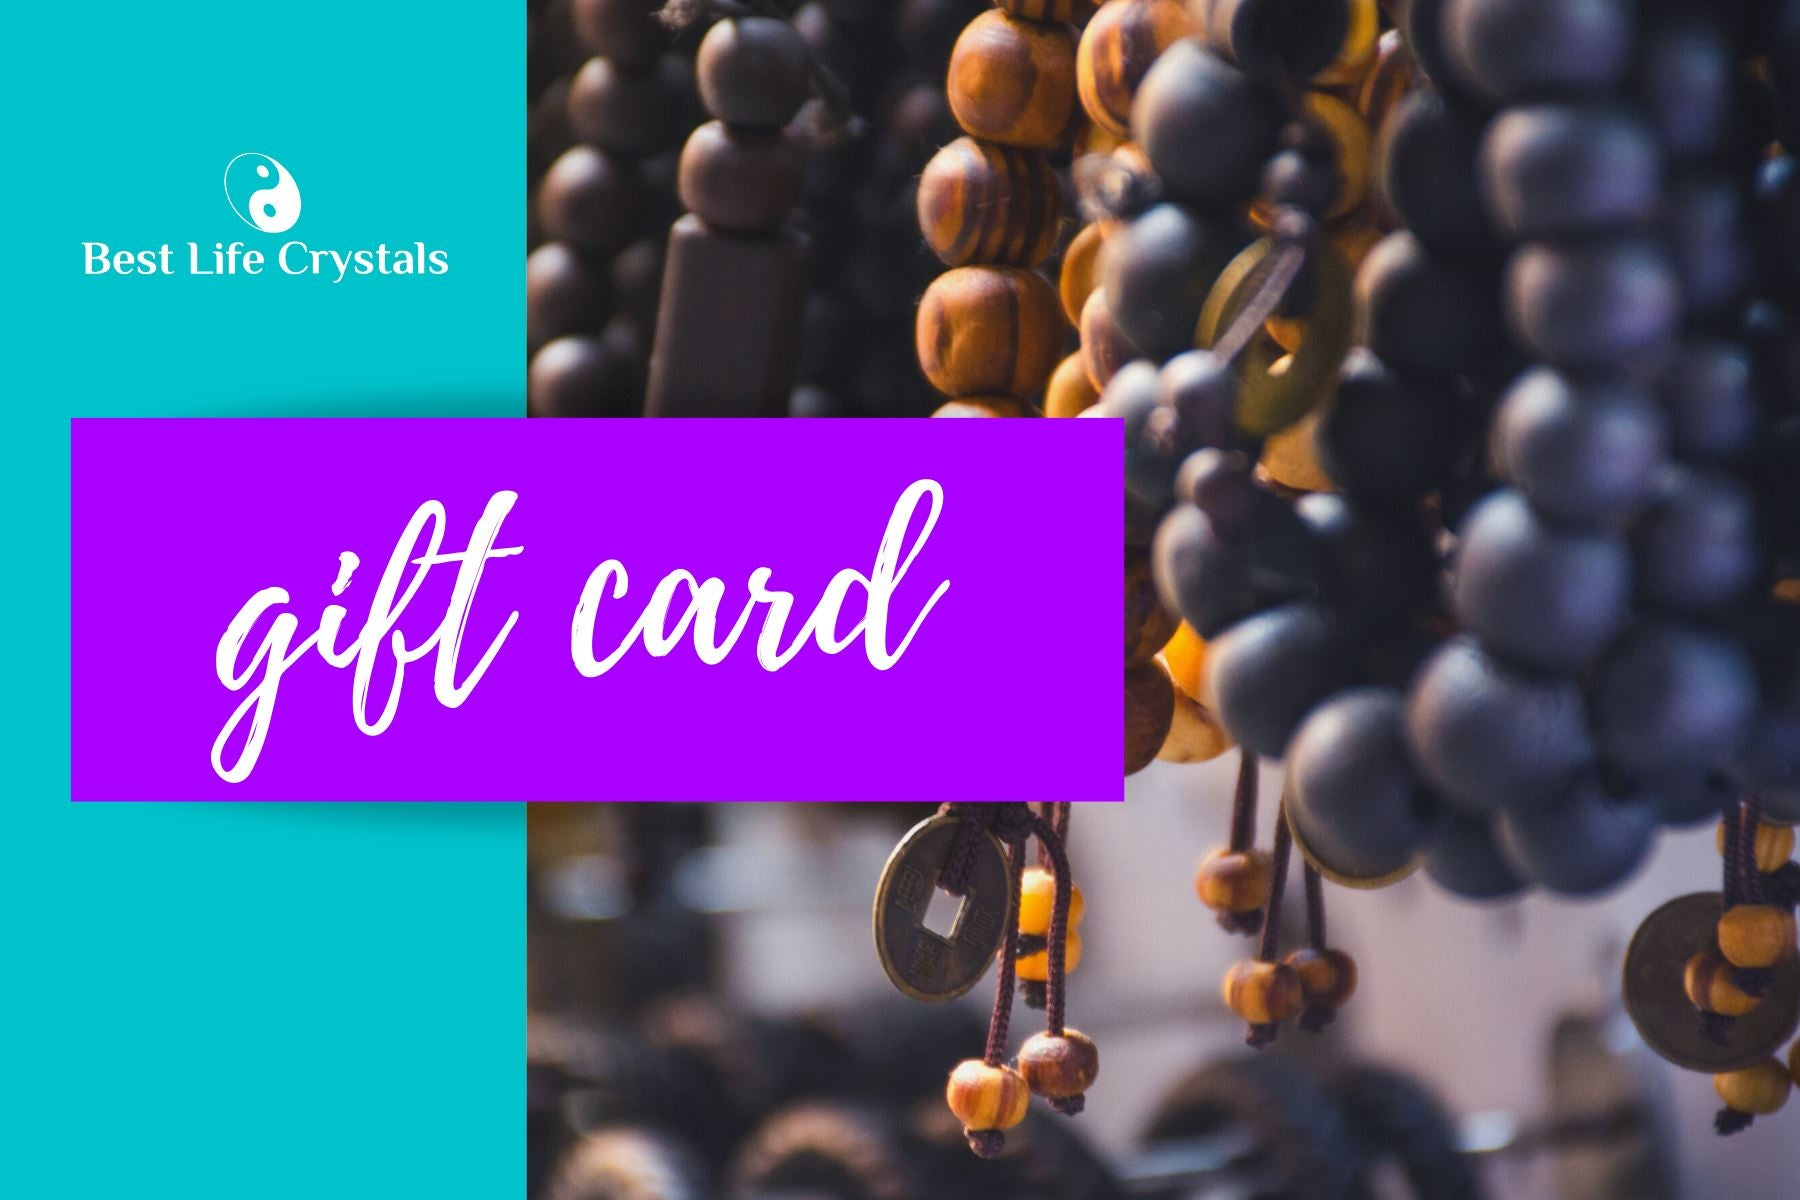 Best Life Crystals Gift Card $10 - Best Life Crystals